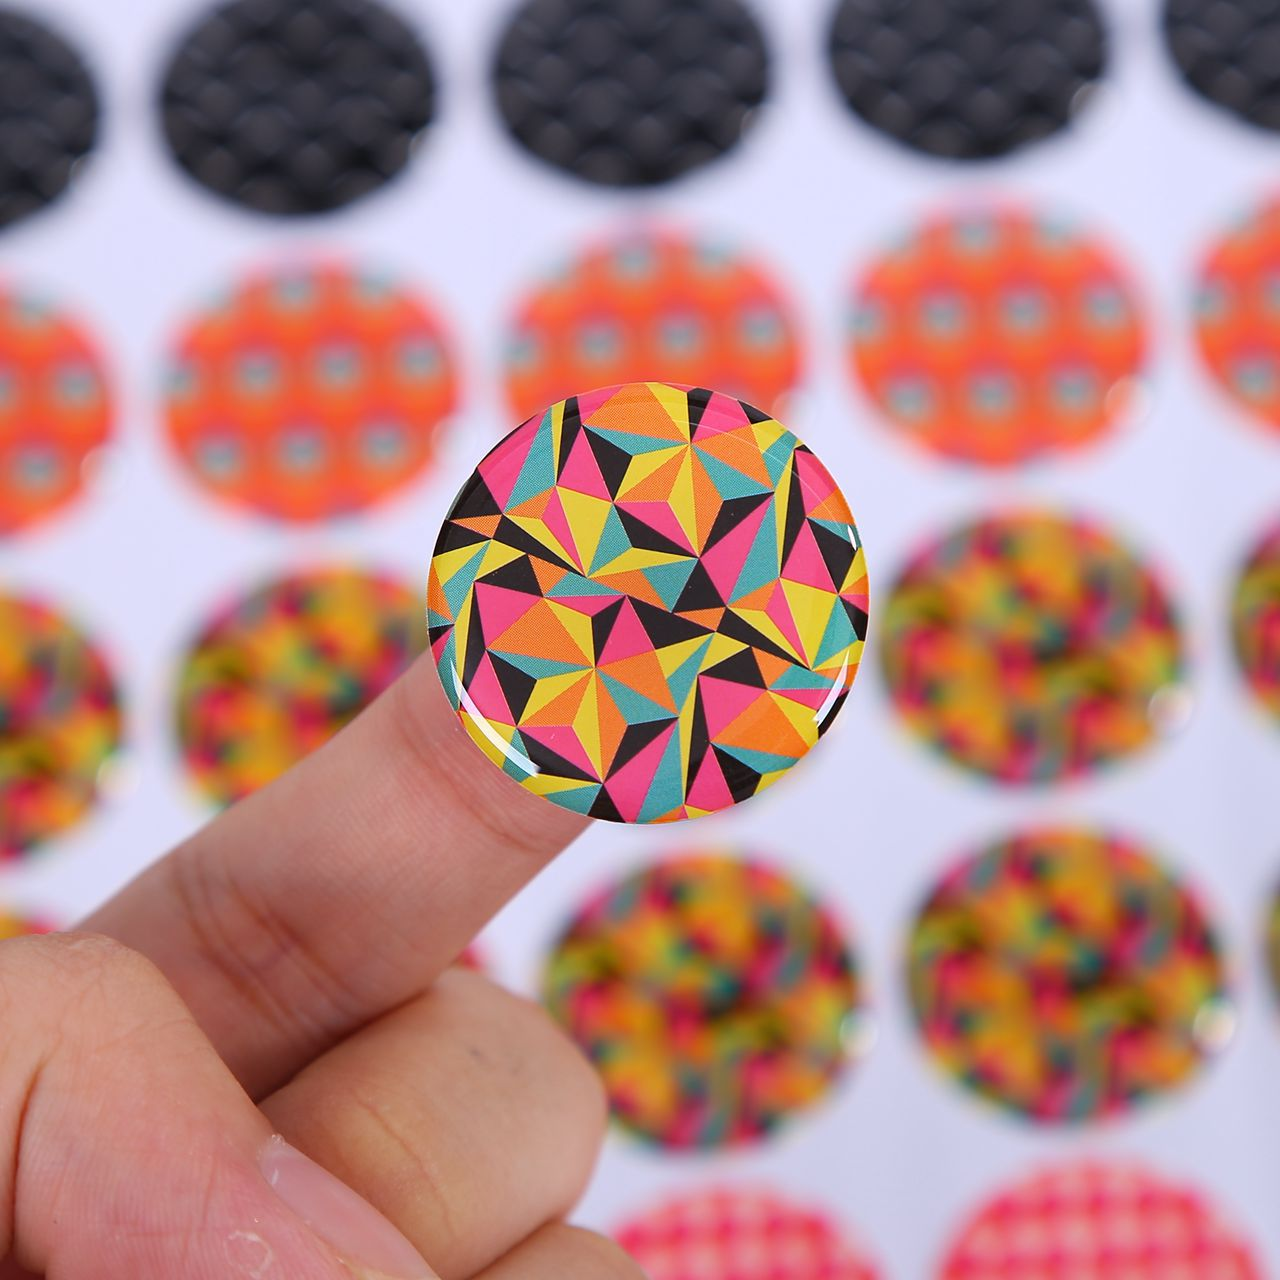 Custom epoxy resin clear crystal dome sticker 3d printing epoxy resin label